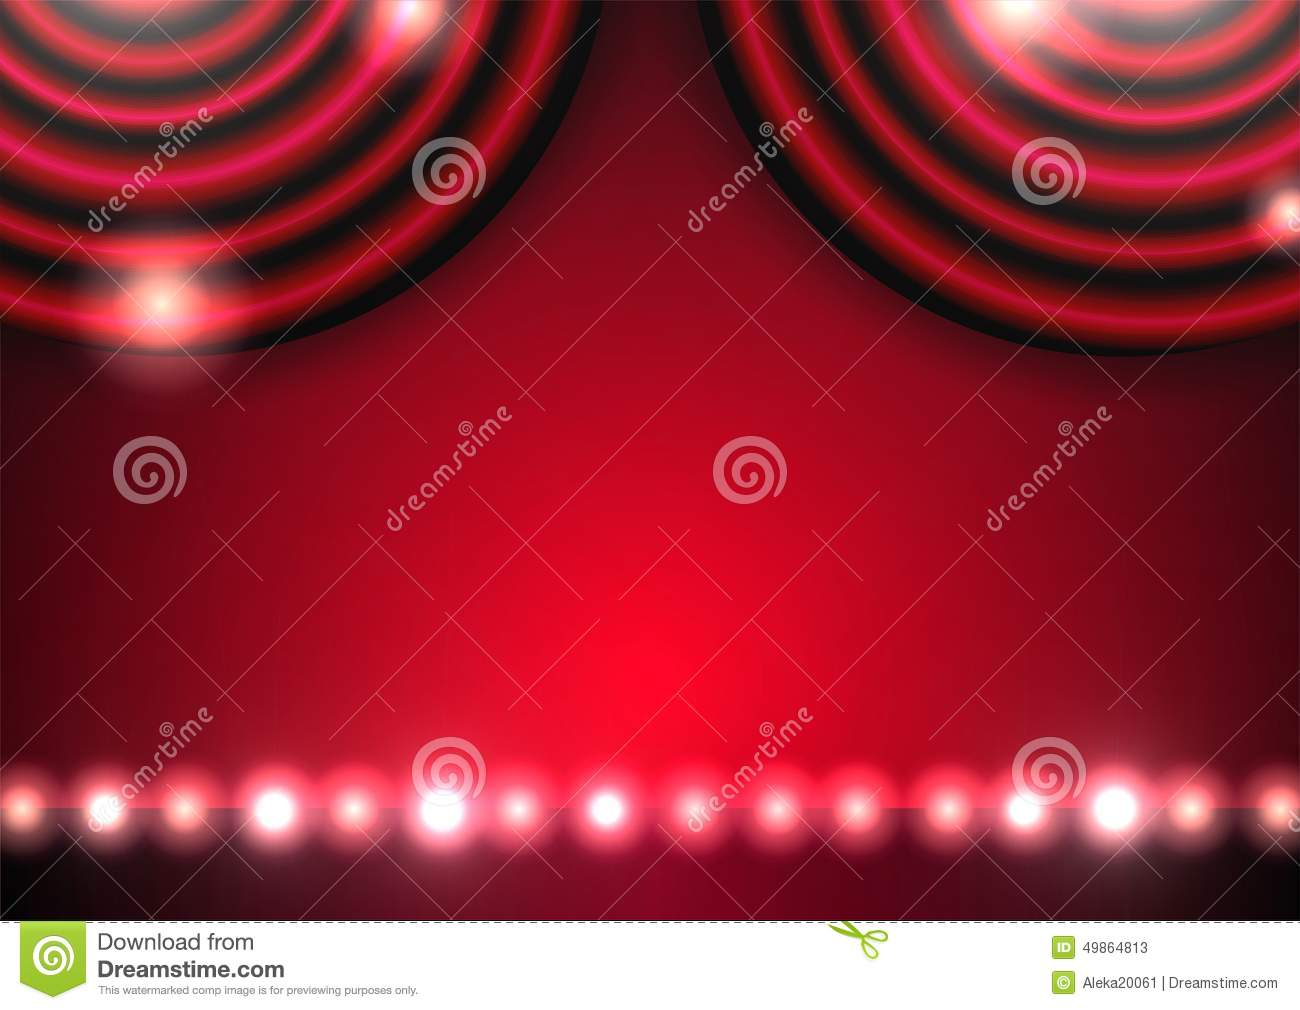 Red stage curtain with lights - Empty Stage Curtains With Lights Empty Stage Curtains With Lights Theatre Stage Curtain And Lights